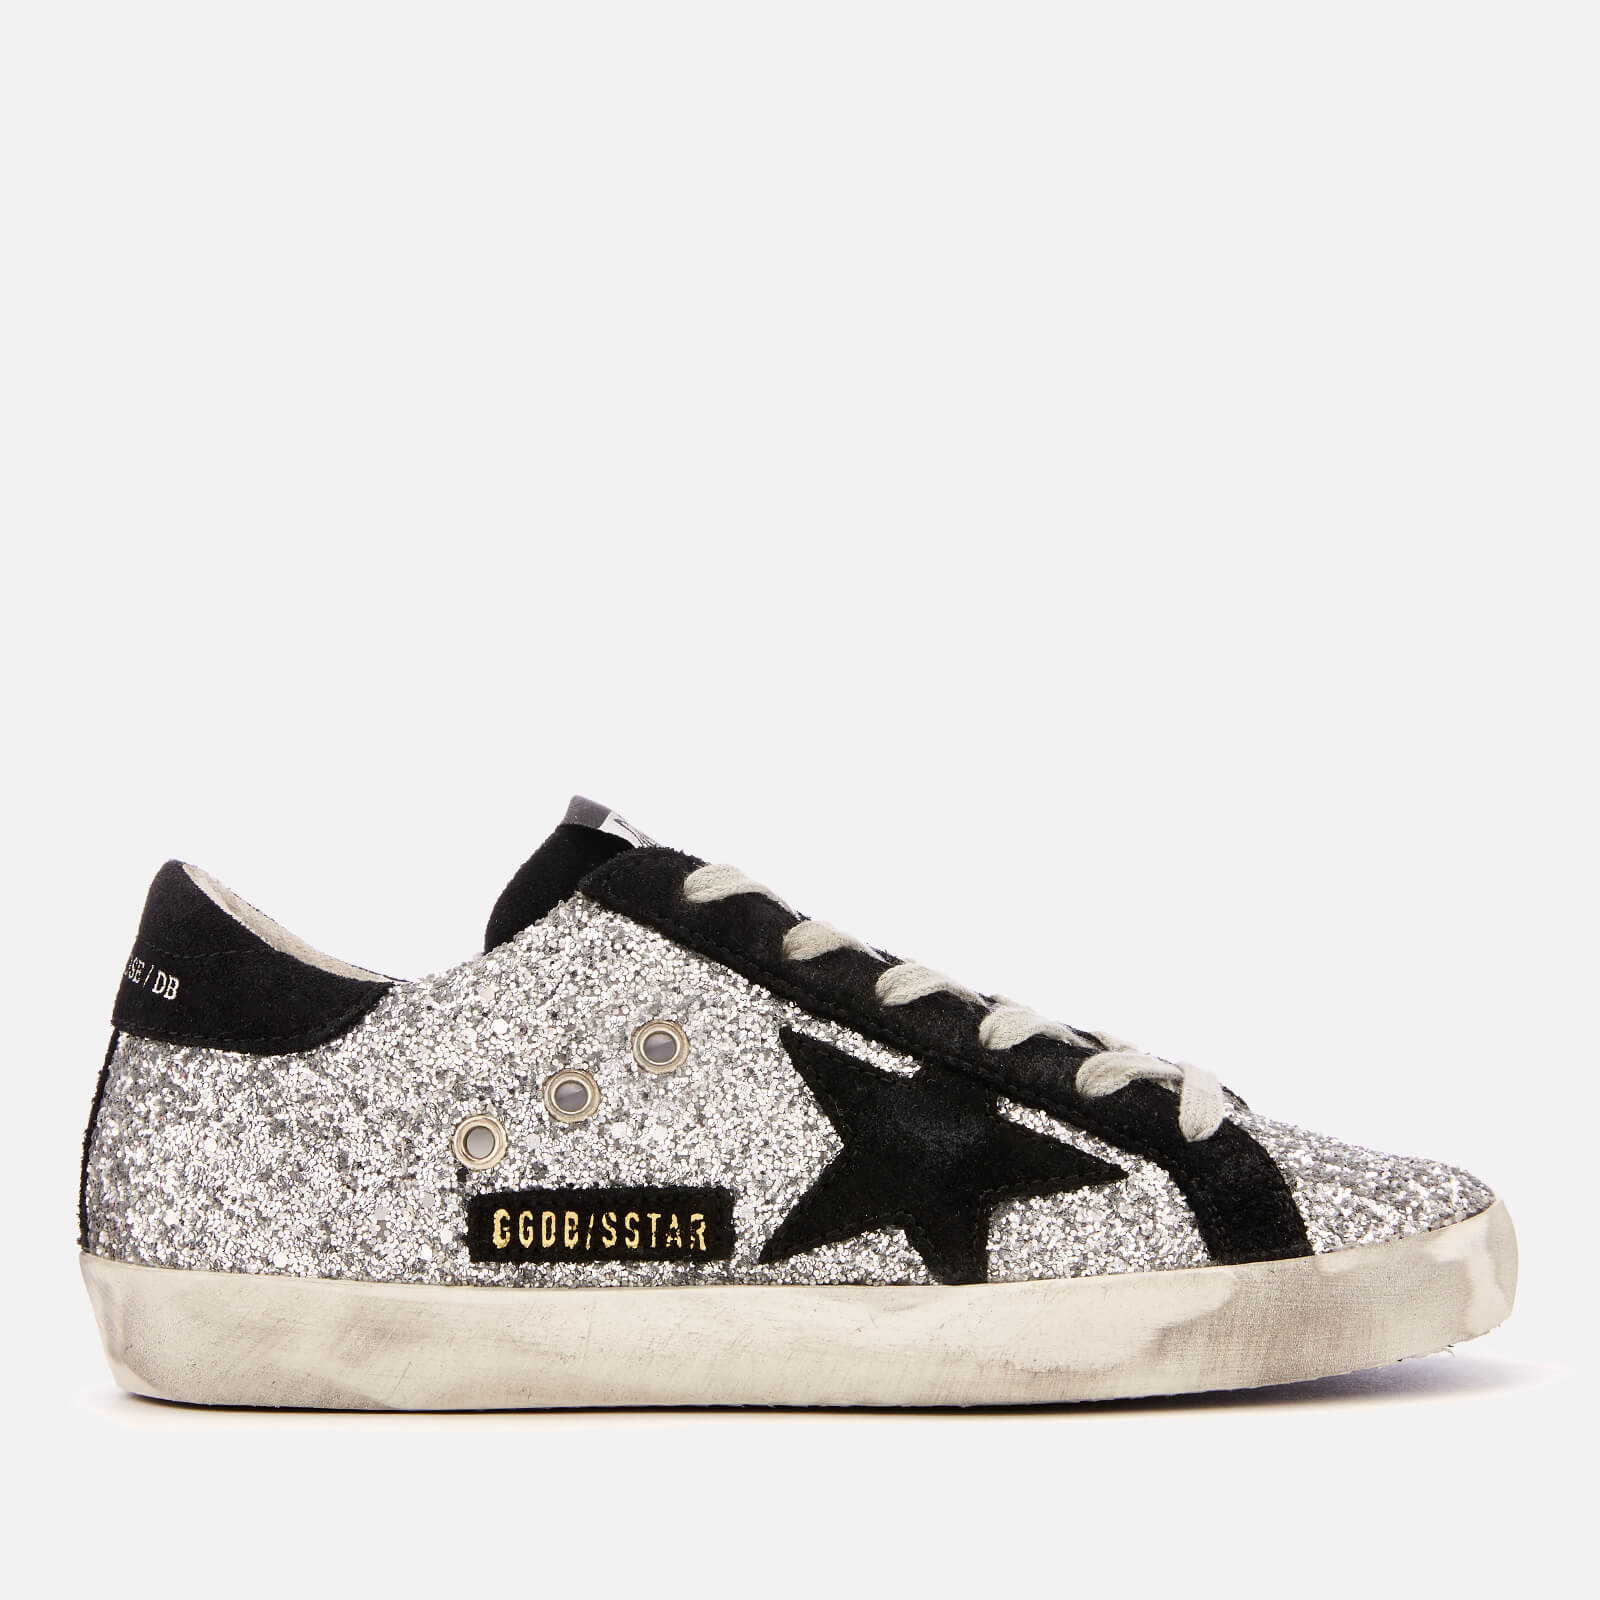 64c2f7a21f7e Golden Goose Deluxe Brand Women s Superstar Leather Trainers - Silver  Glitter Black Star - Free UK Delivery over £50